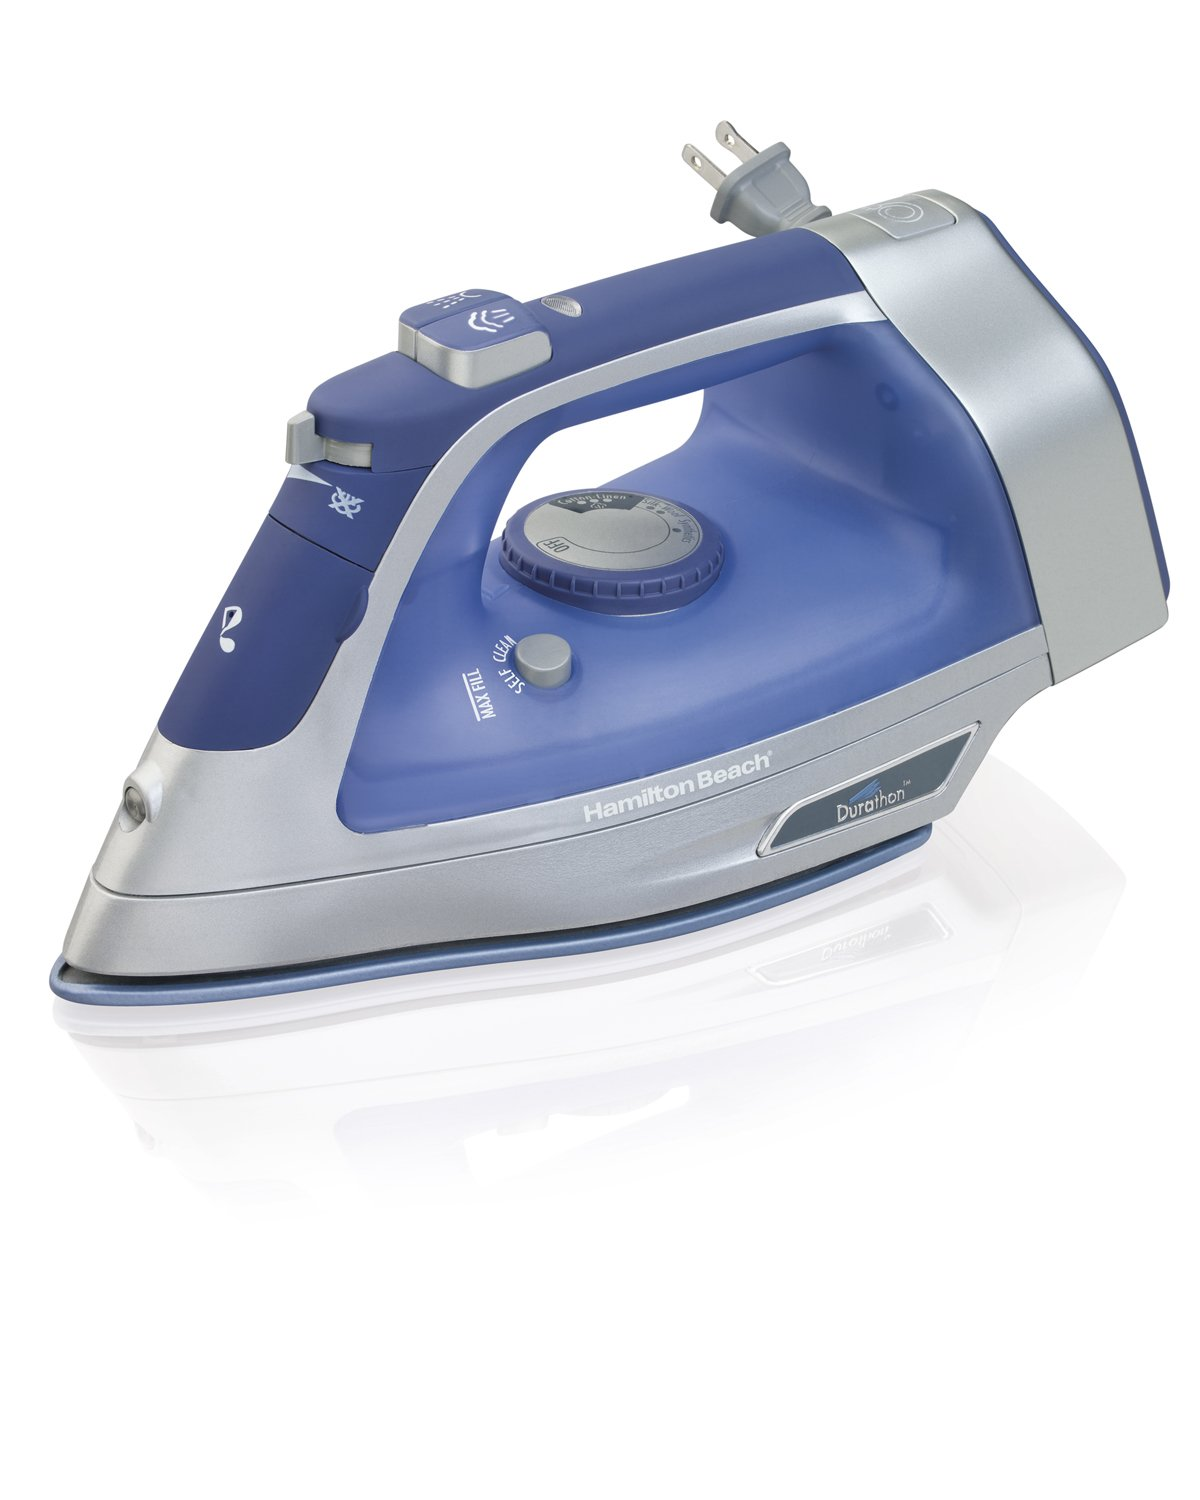 Hamilton Beach 19803 Durathon Full Size Iron with Retractable Cord, Blue